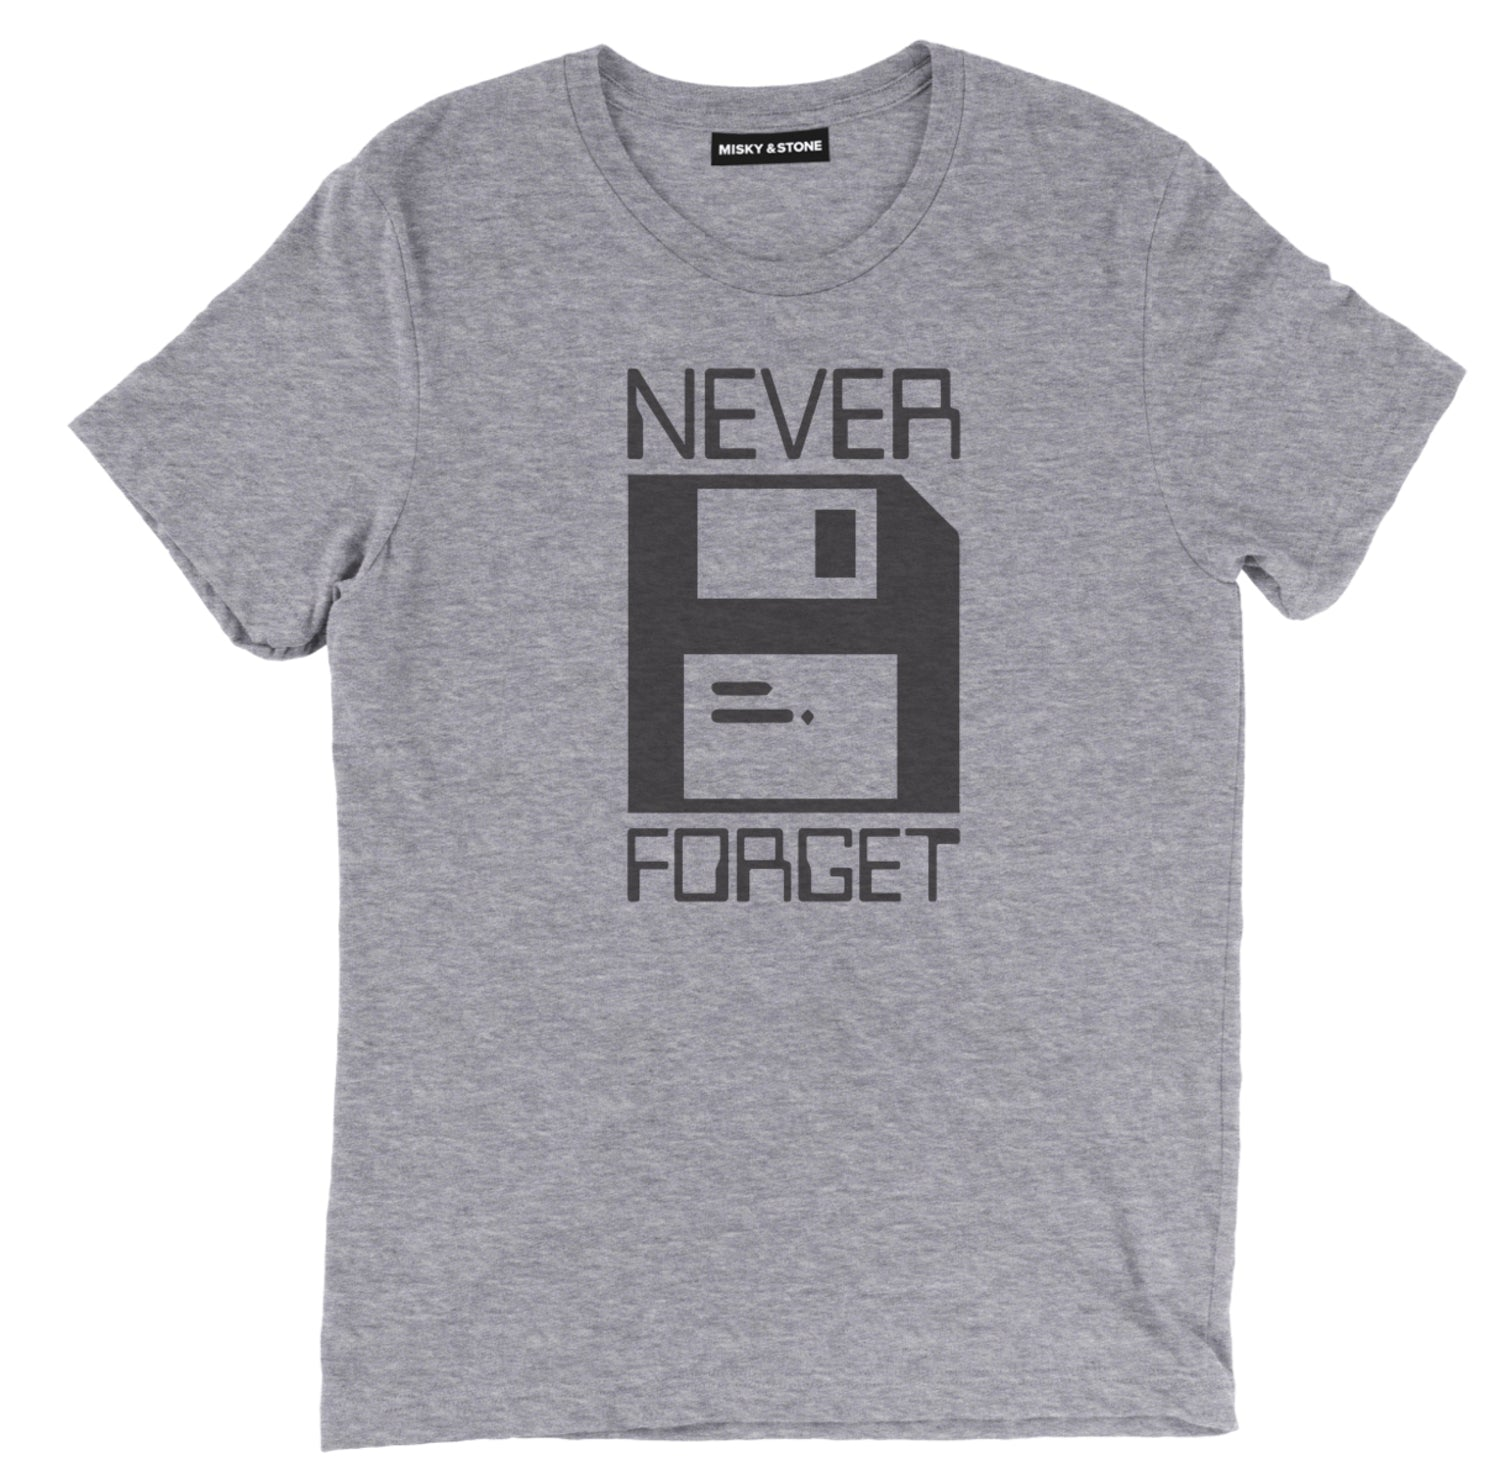 never forget shirt, never forget t shirt, never forget tee shirt, floppy disk shirt